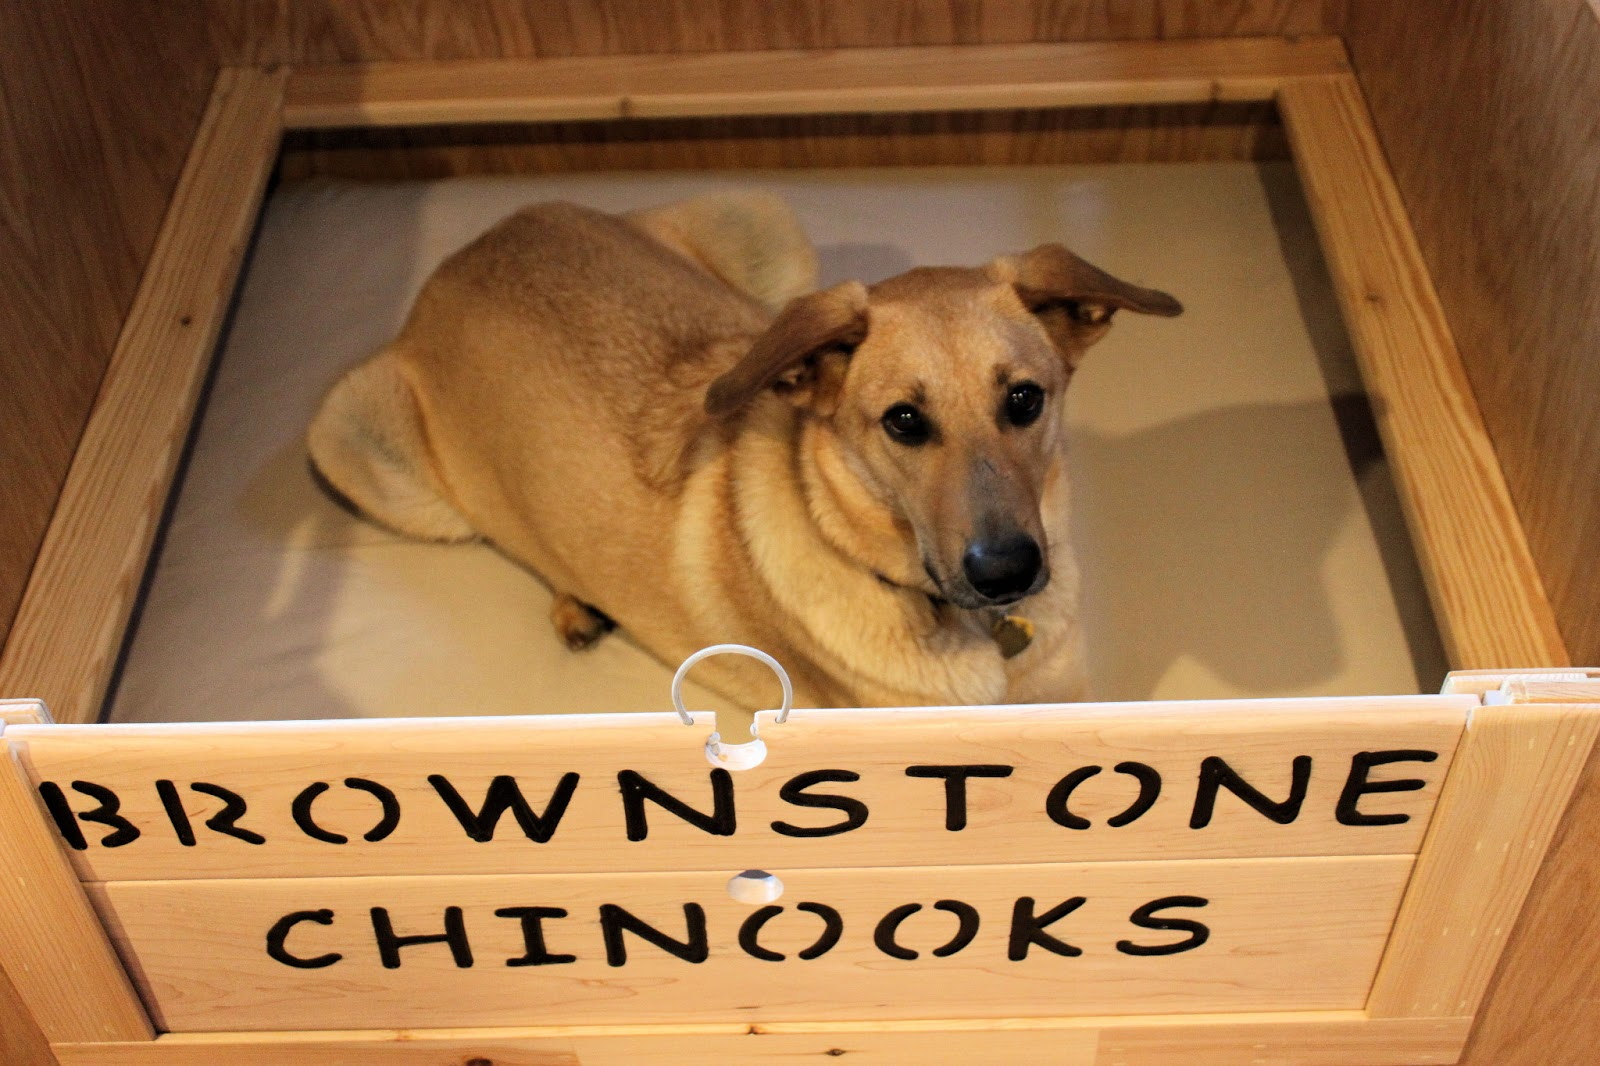 Brownstone Chinooks Boxed And Ready